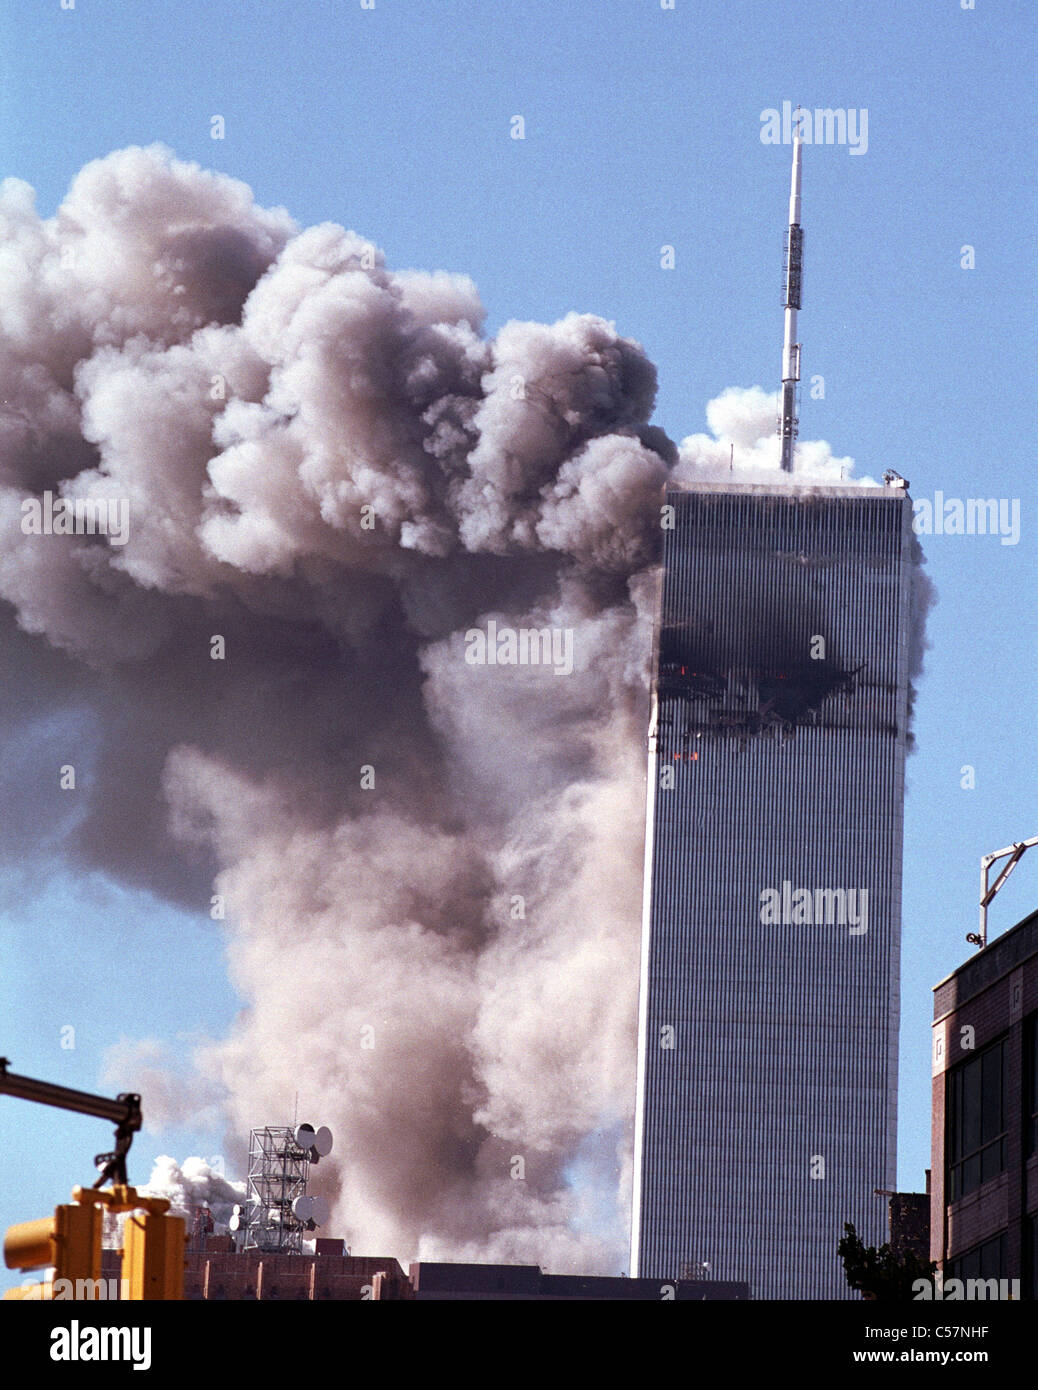 World Trade Center terrorism on September 11, 2001. Tower number two collapses - Stock Image